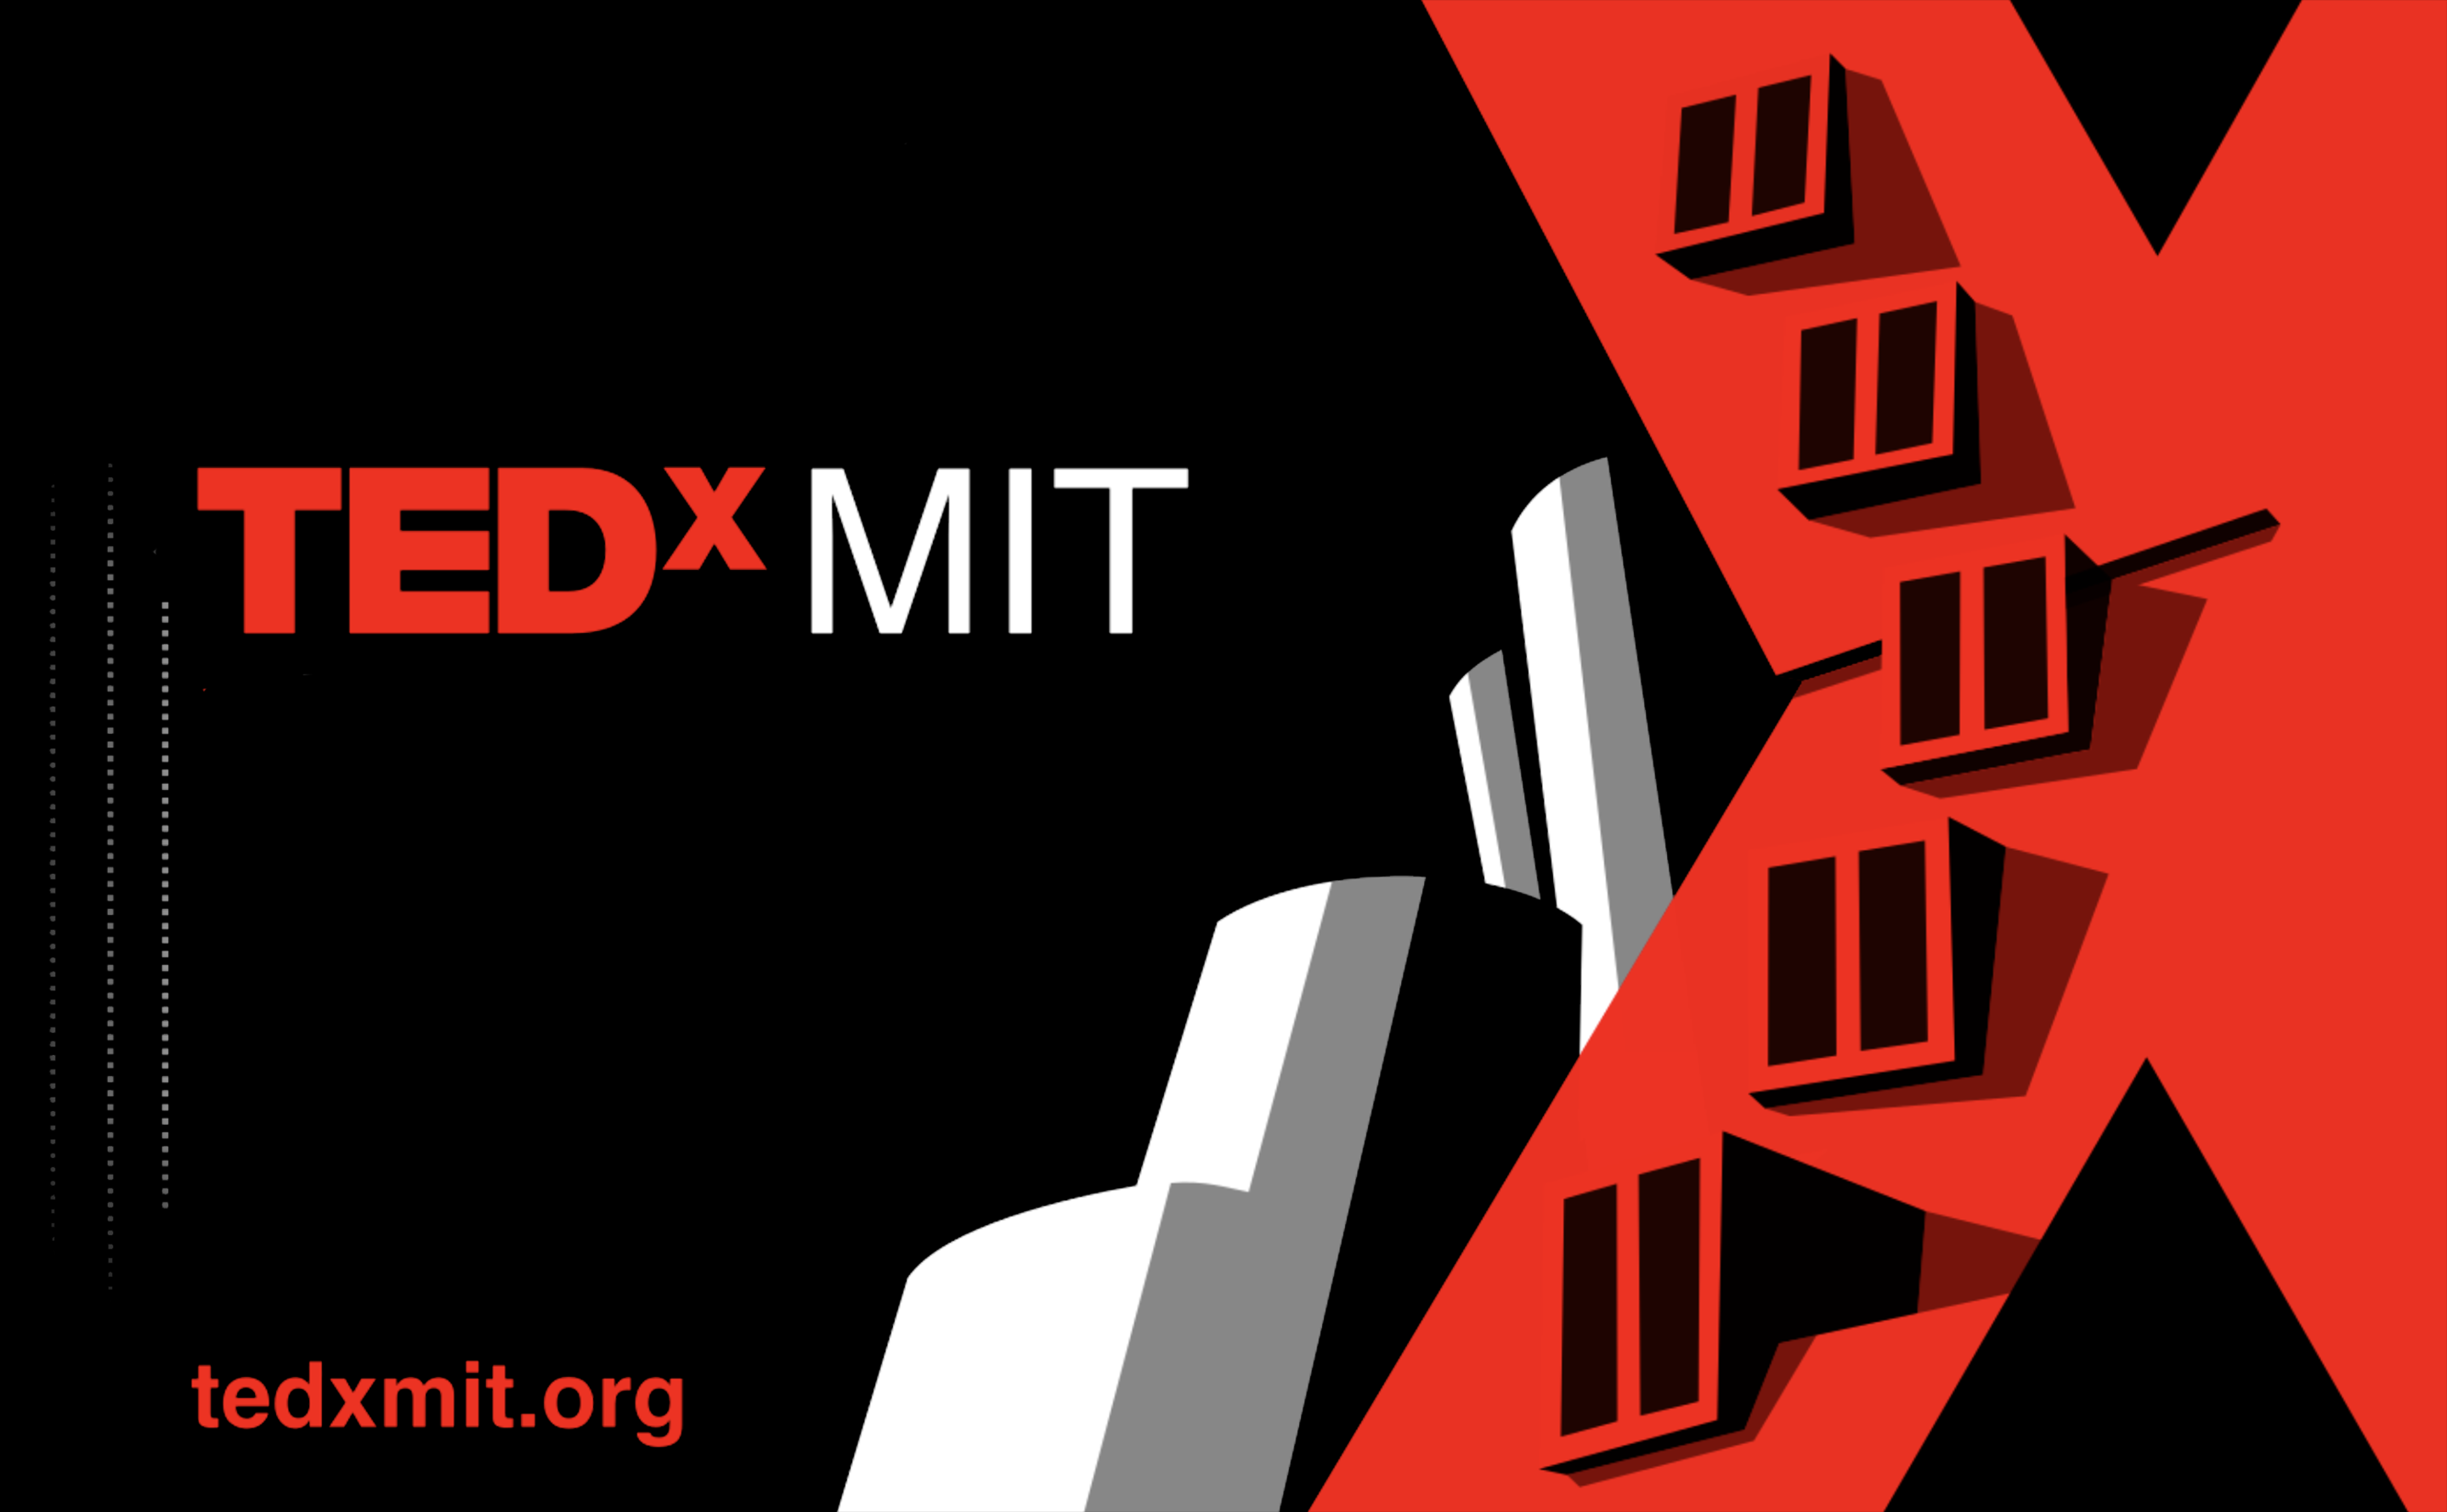 TEDx MIT computing the future